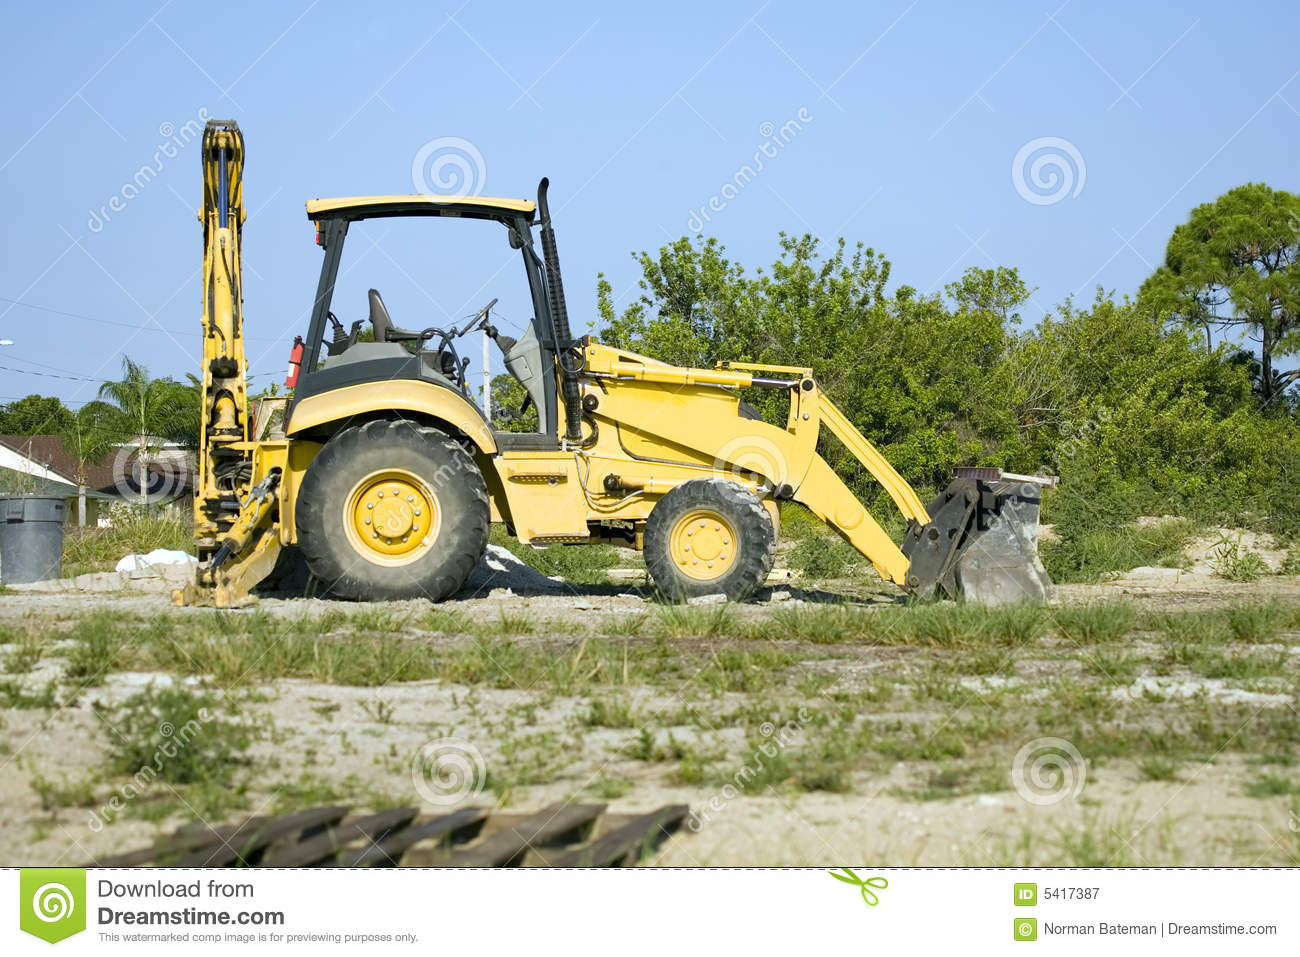 A Small Tractor With Backhoe And Blade Stock Image - Image of yellow